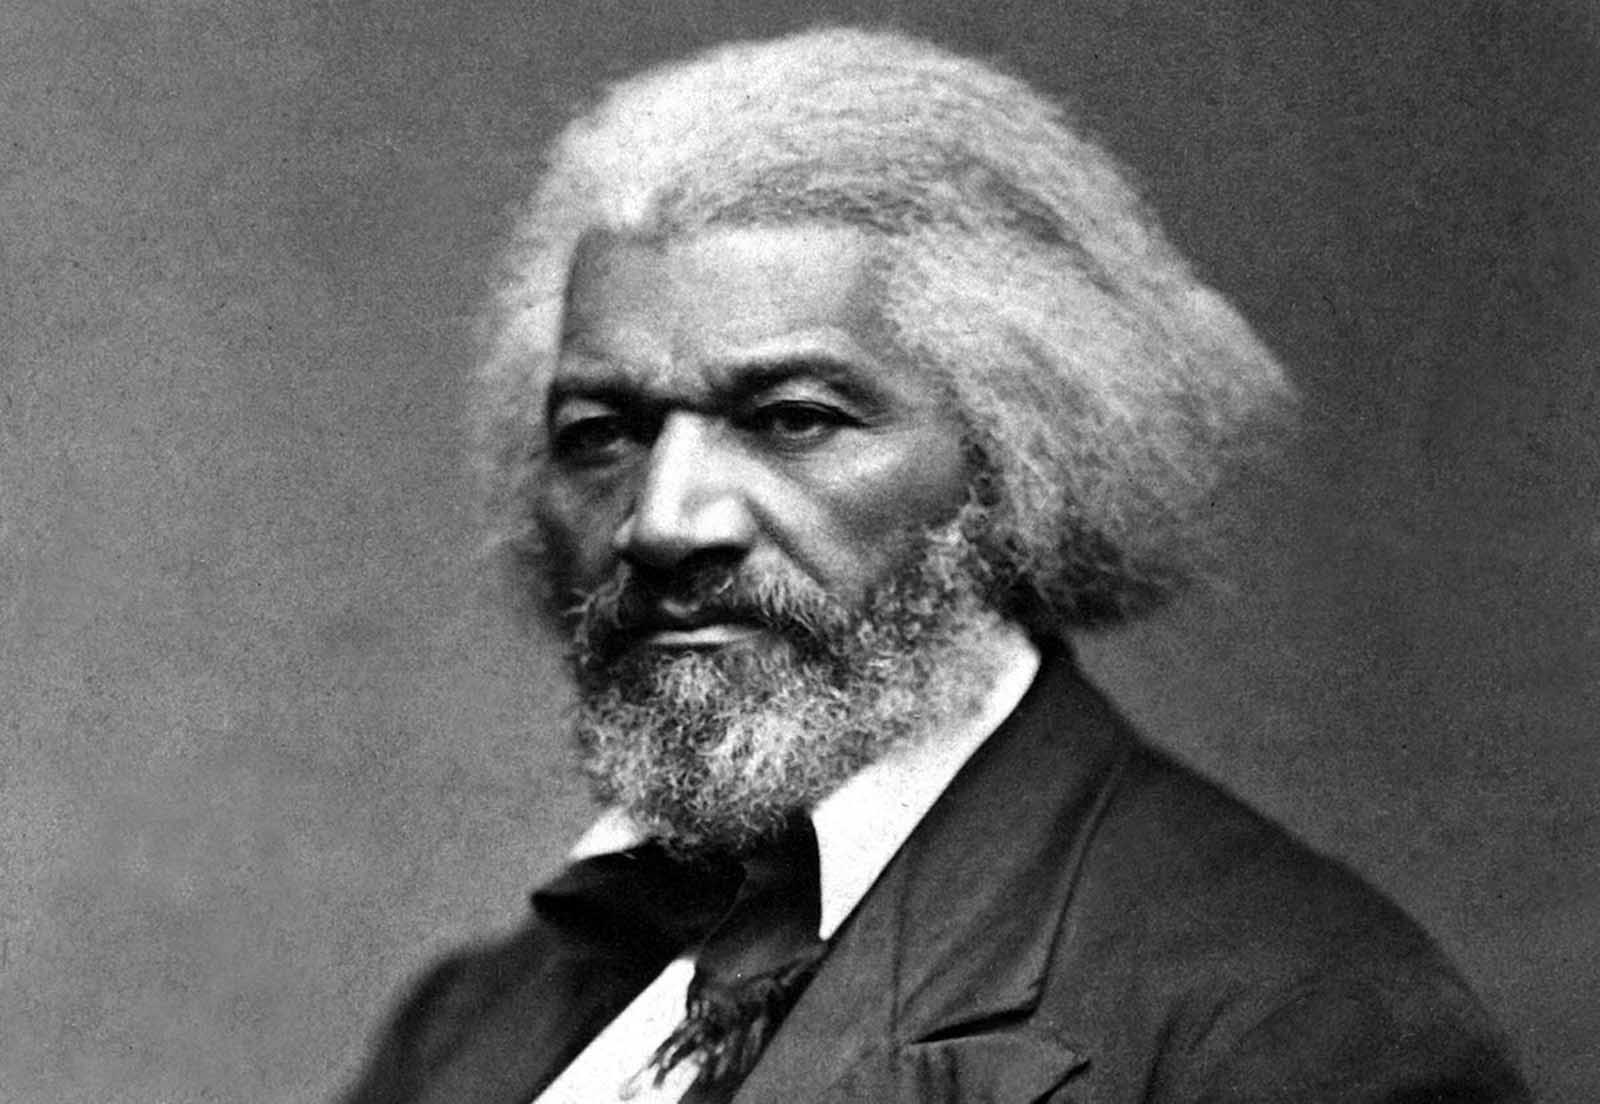 Frederick Douglass, ca. 1879. Born a slave in Maryland, Douglass escaped as a young man, eventually becoming an influential social reformer, a powerful orator and a leader of the abolitionist movement.